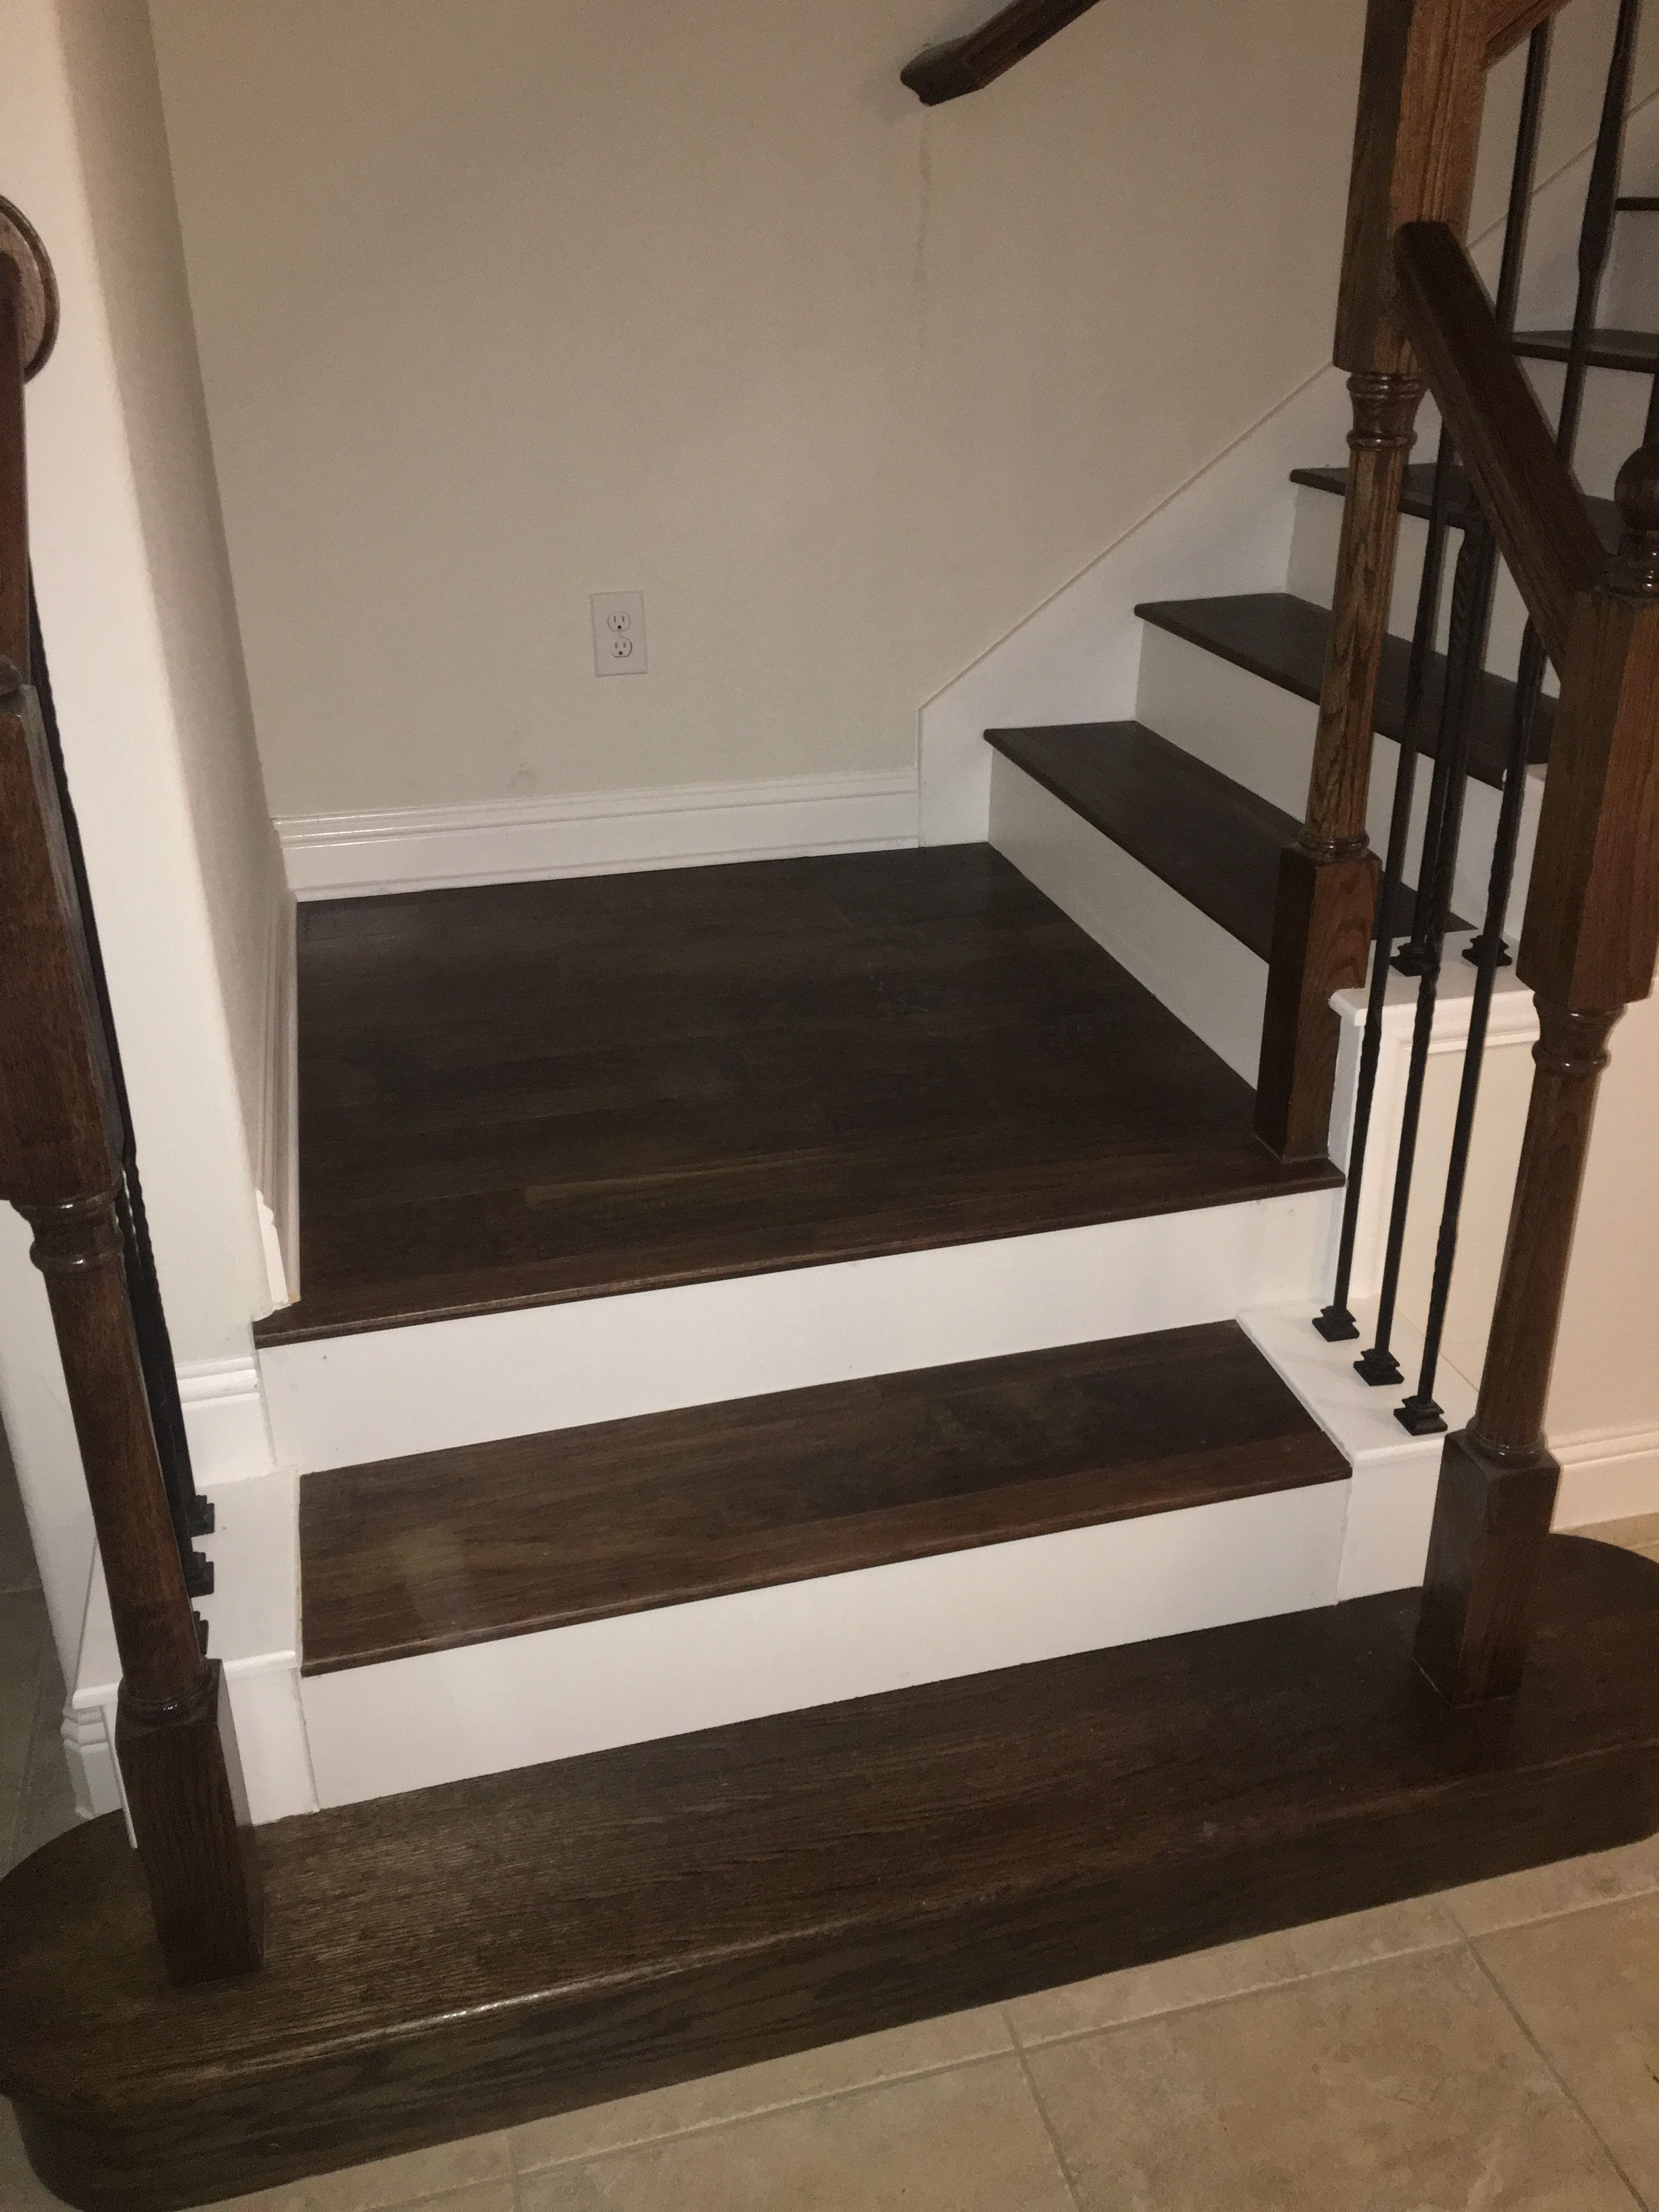 Pin By Draper Floors On Stairs White Stair Risers Hardwood | Hardwood Stairs With White Risers | Pine | Tread | Trim | Hardwood Flooring | Before And After